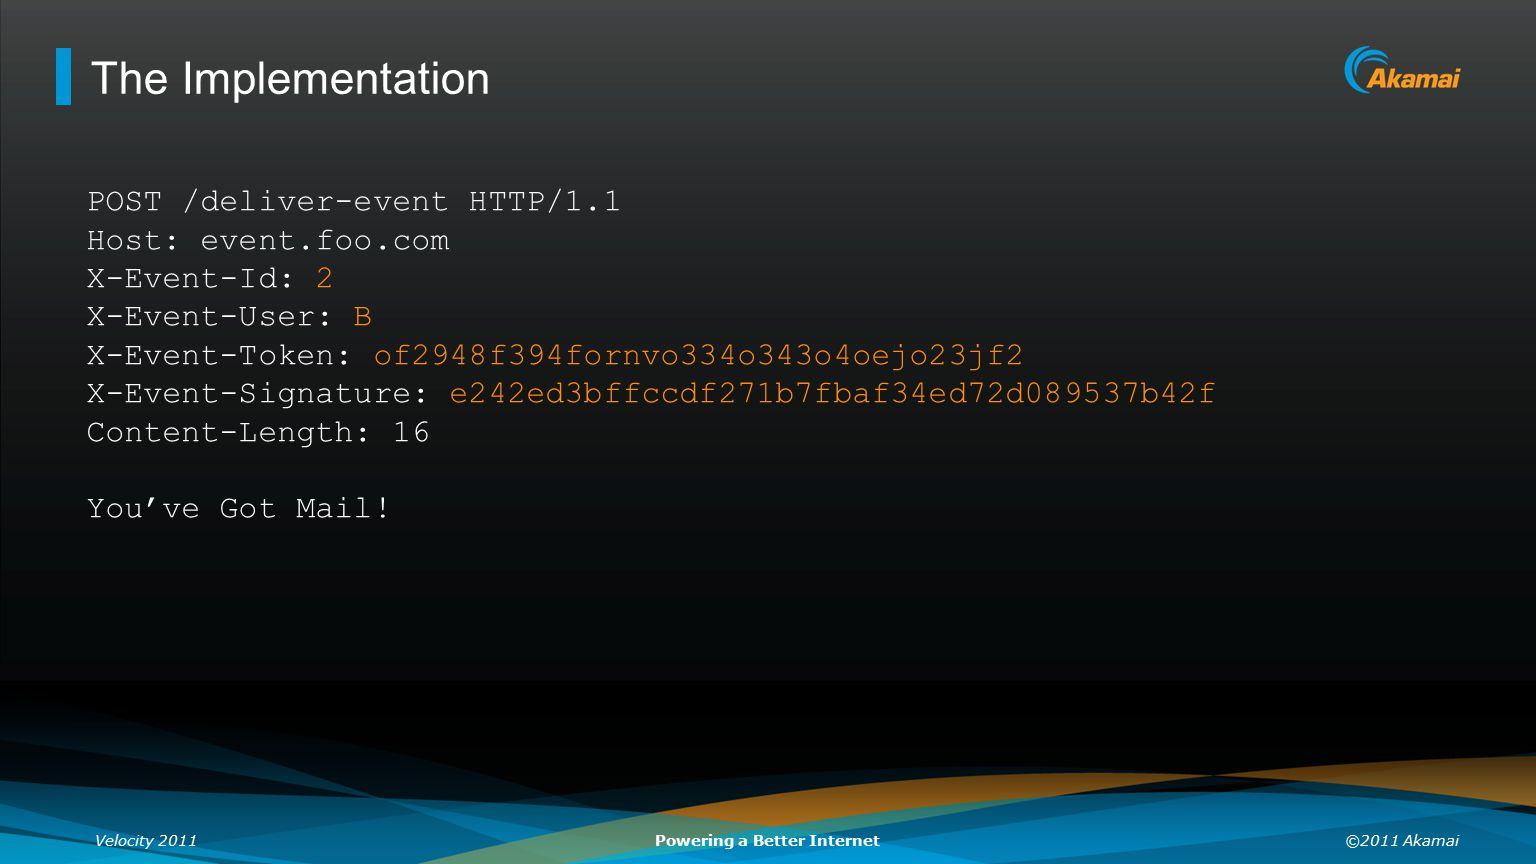 The Implementation POST /deliver-event HTTP/1.1 Host: event.foo.com